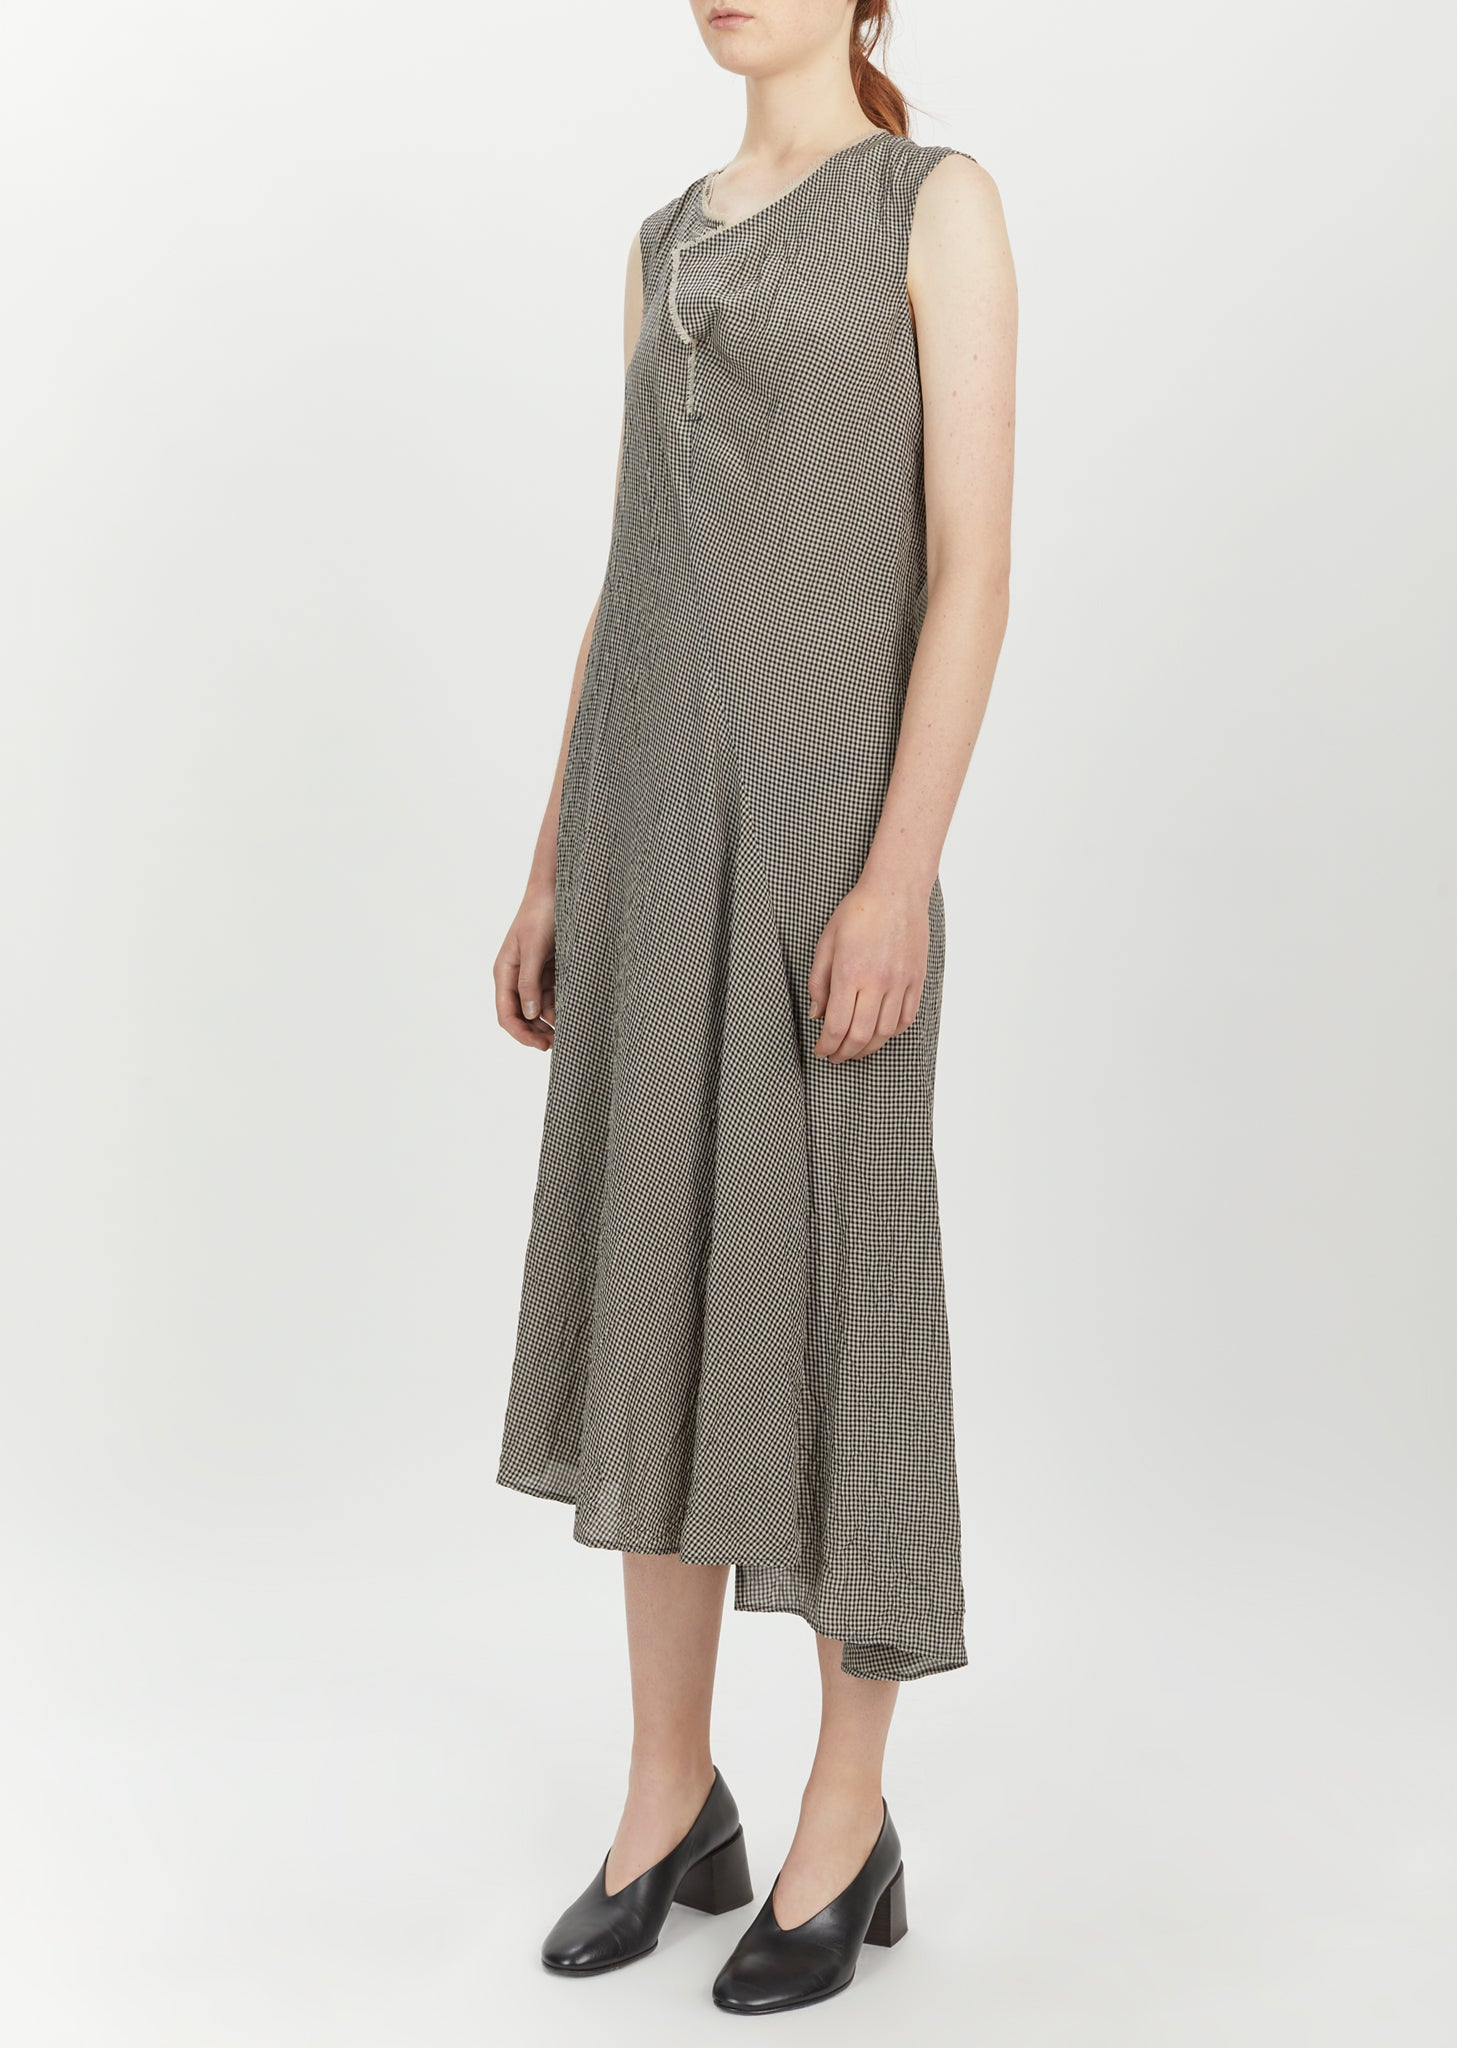 213be2cde434 Deala Check Dress by Acne Studios- La Garçonne